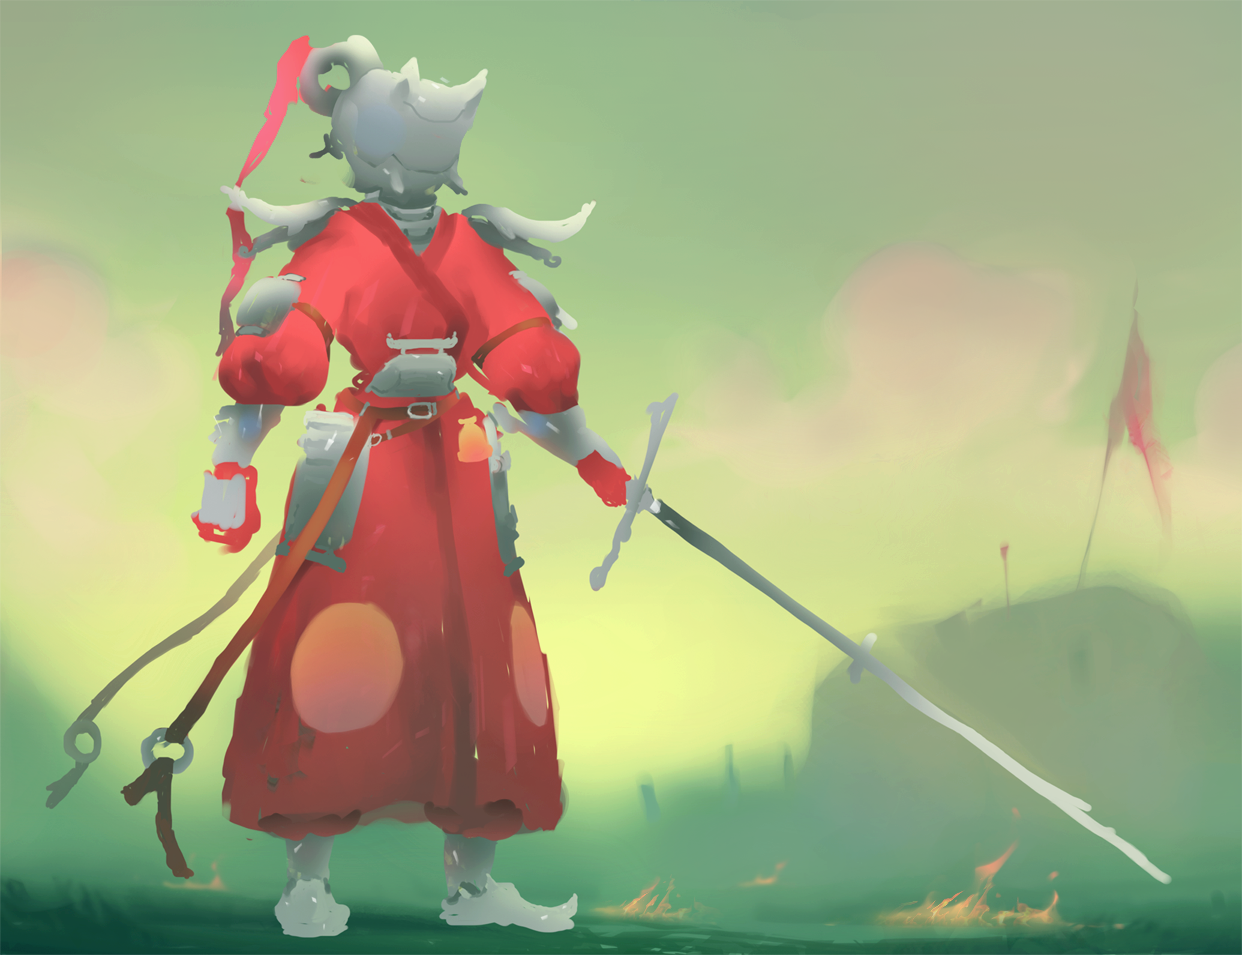 Candle knight